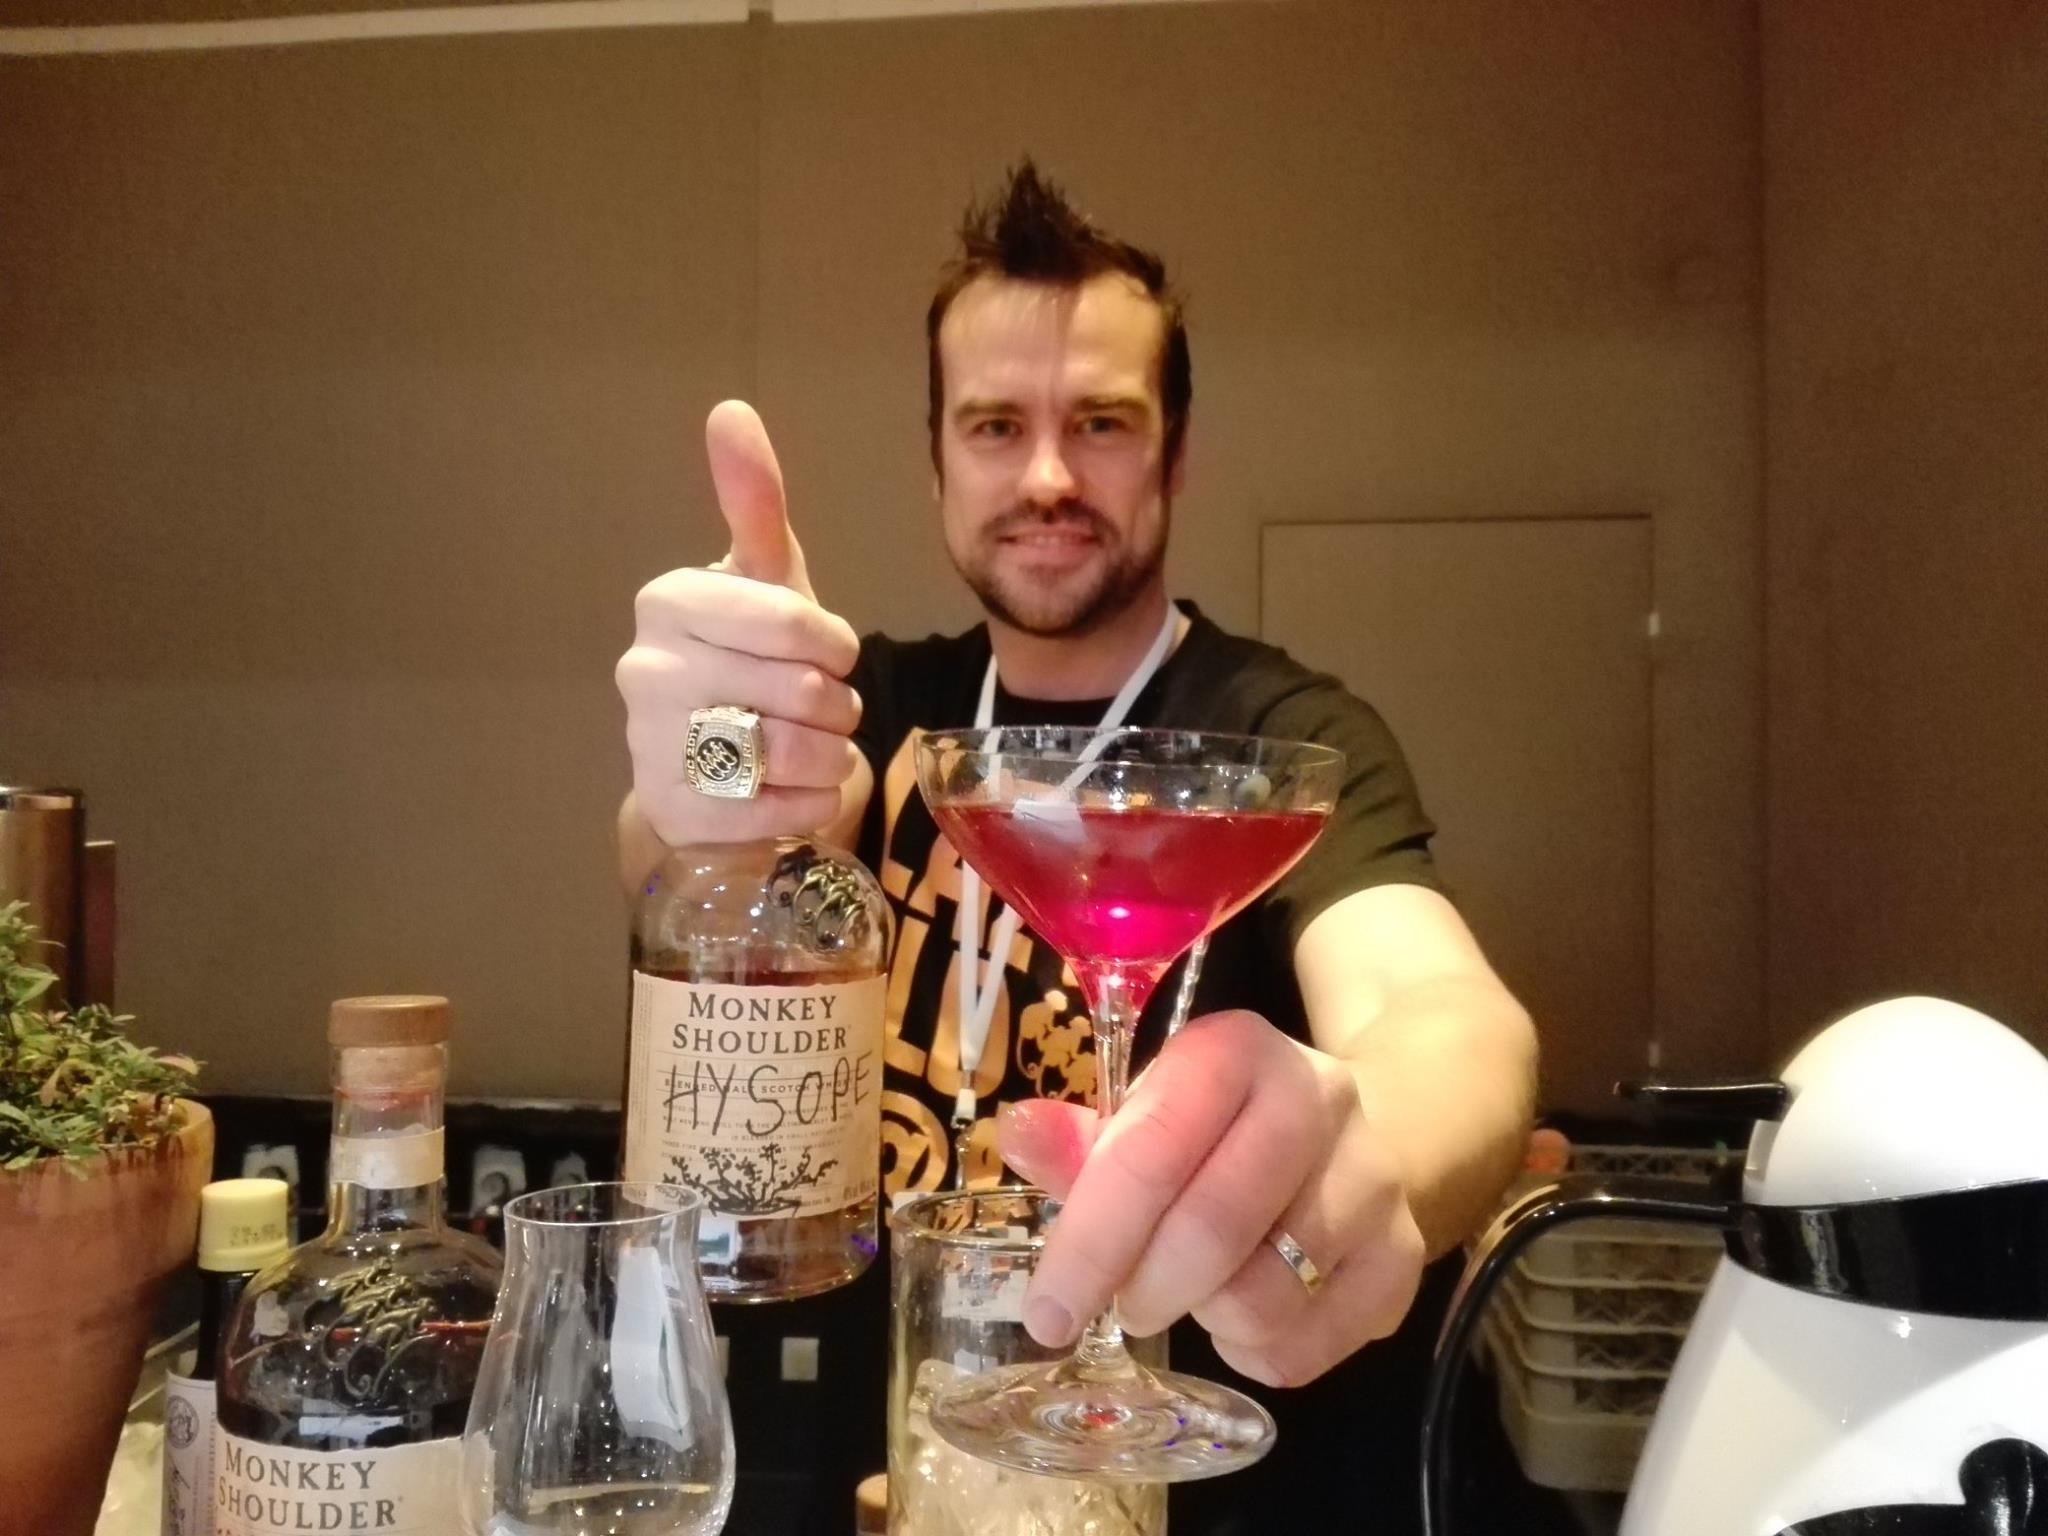 Monkey Shoulder - Timothy Ward - Paris cocktail festival